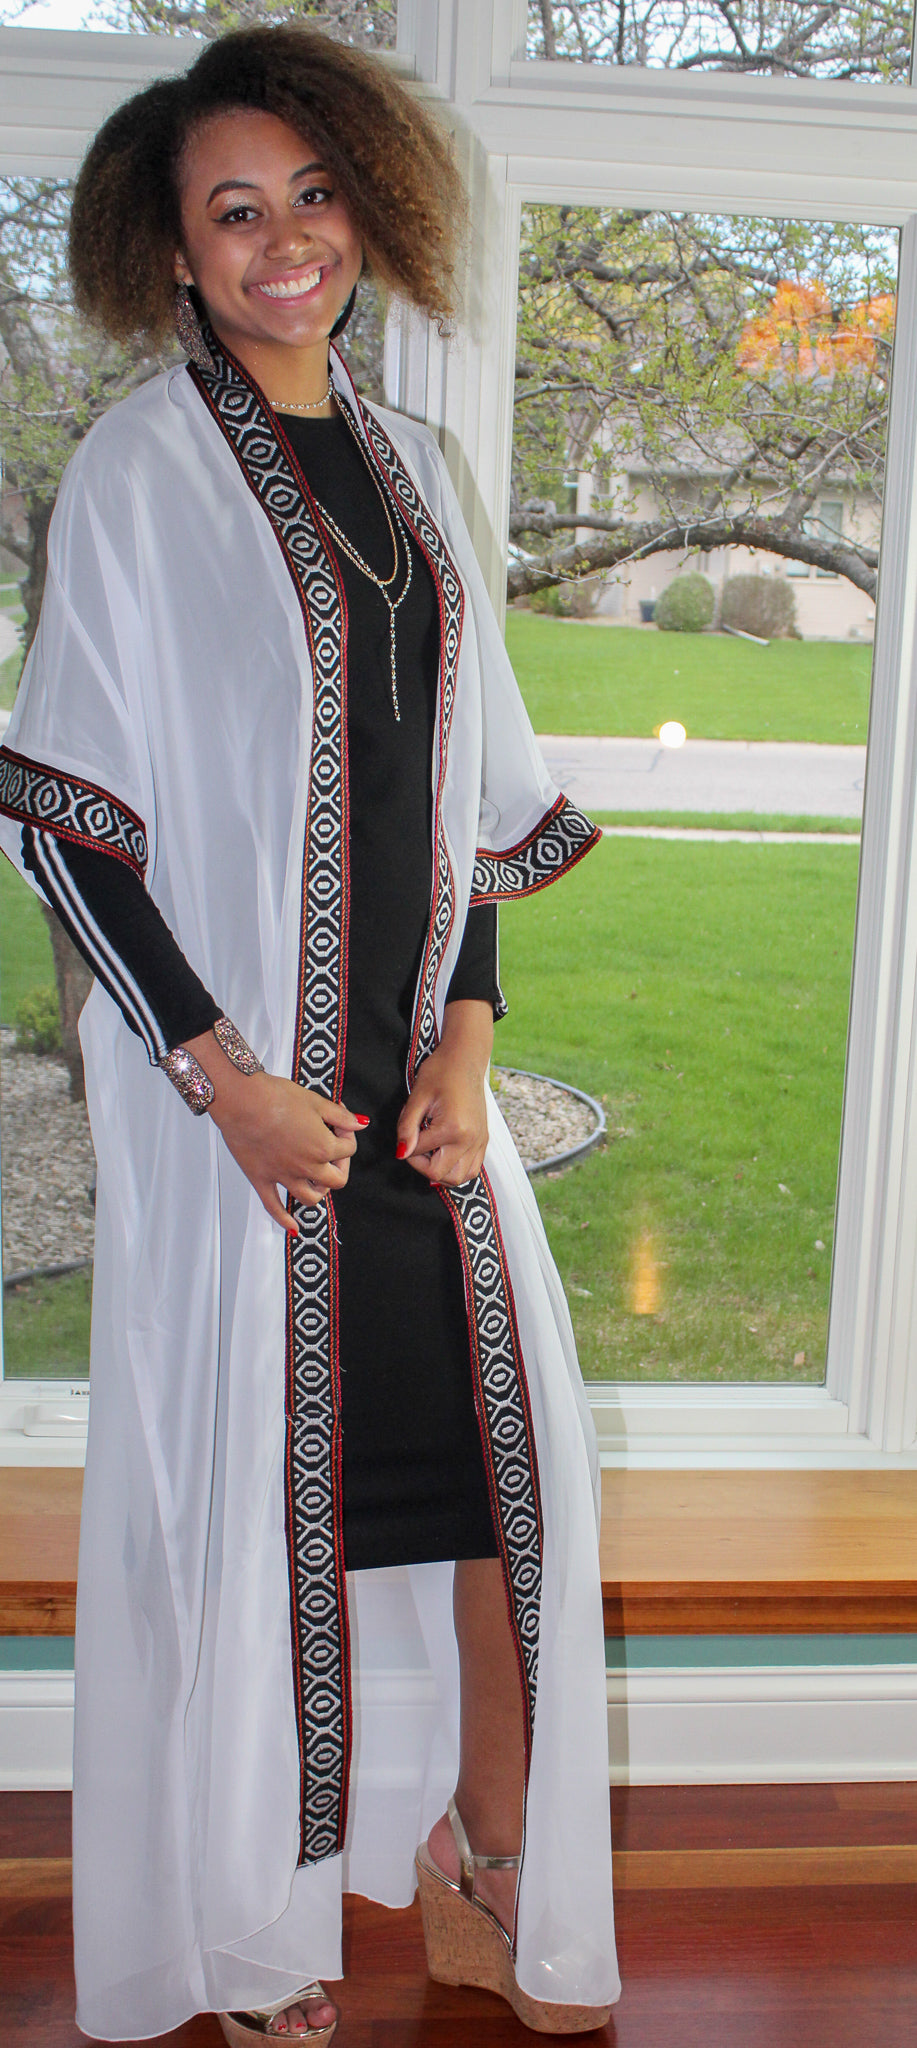 Short sleeve white Traditional Tunic/Abaya